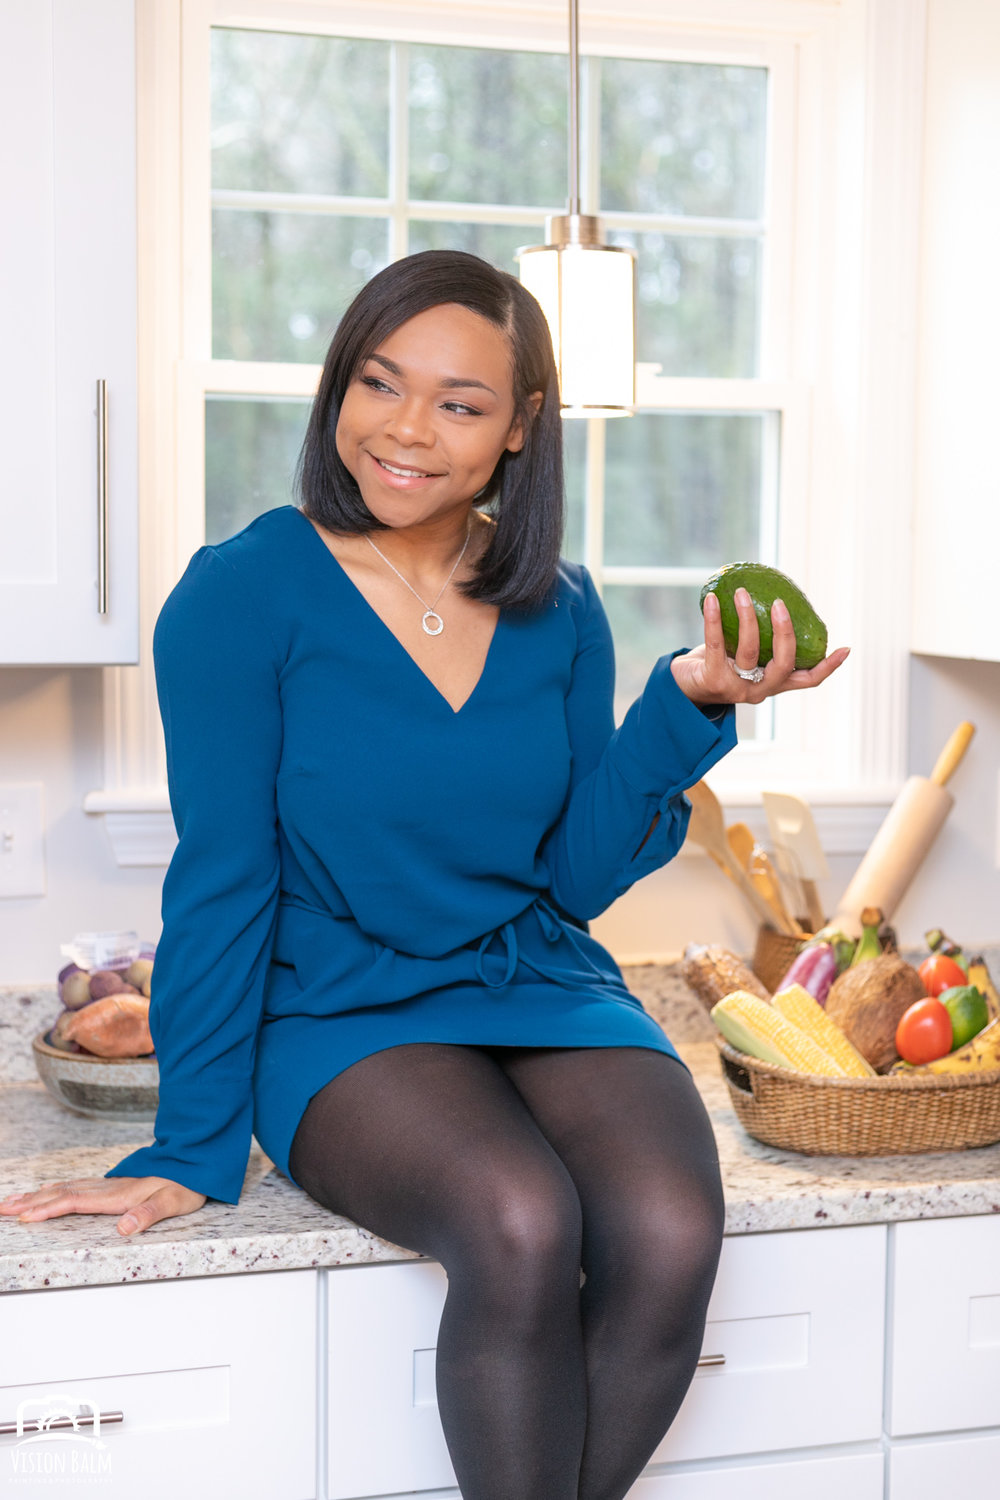 Professional portrait of a registered dietitian holding fruit in her kitchen sitting on the counter top and wearing a blue dress photographed by Vision Balm in Charleston, SC.